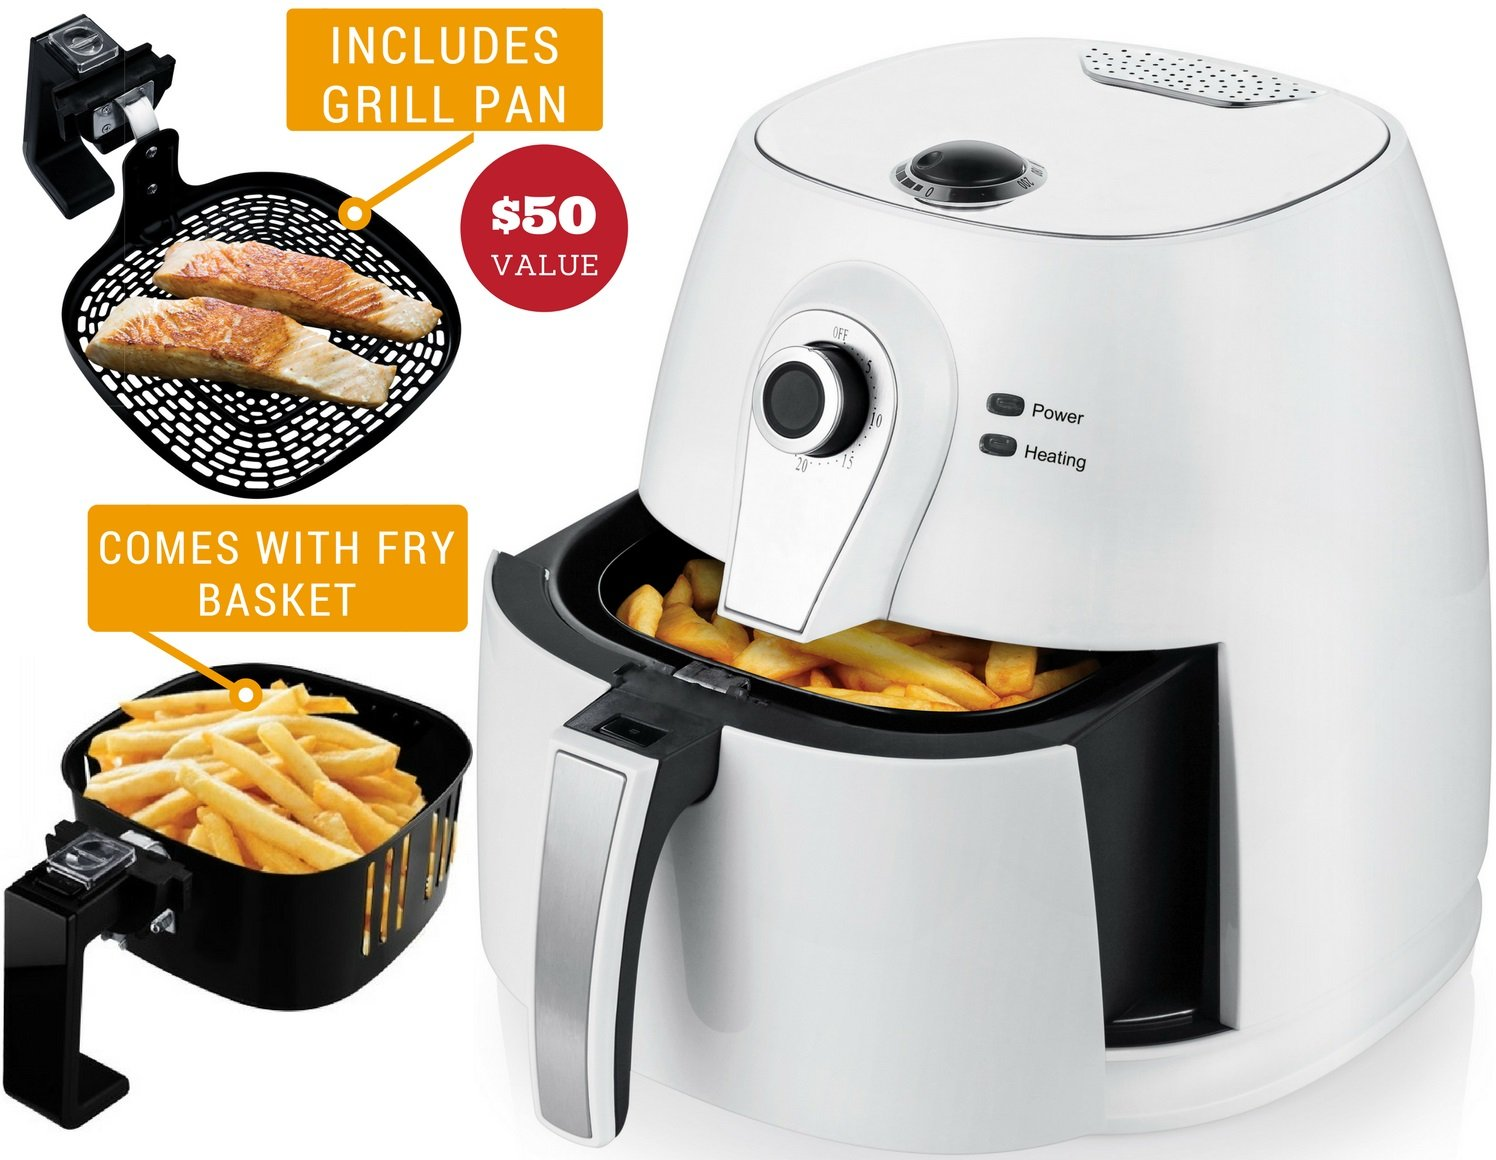 Ovente Electric Air Fryer with Timer, 3.2 Qt, 1400 Watts, Adjustable Temperature Controls, Includes Fry Basket and Pan, White (FAM21302W)